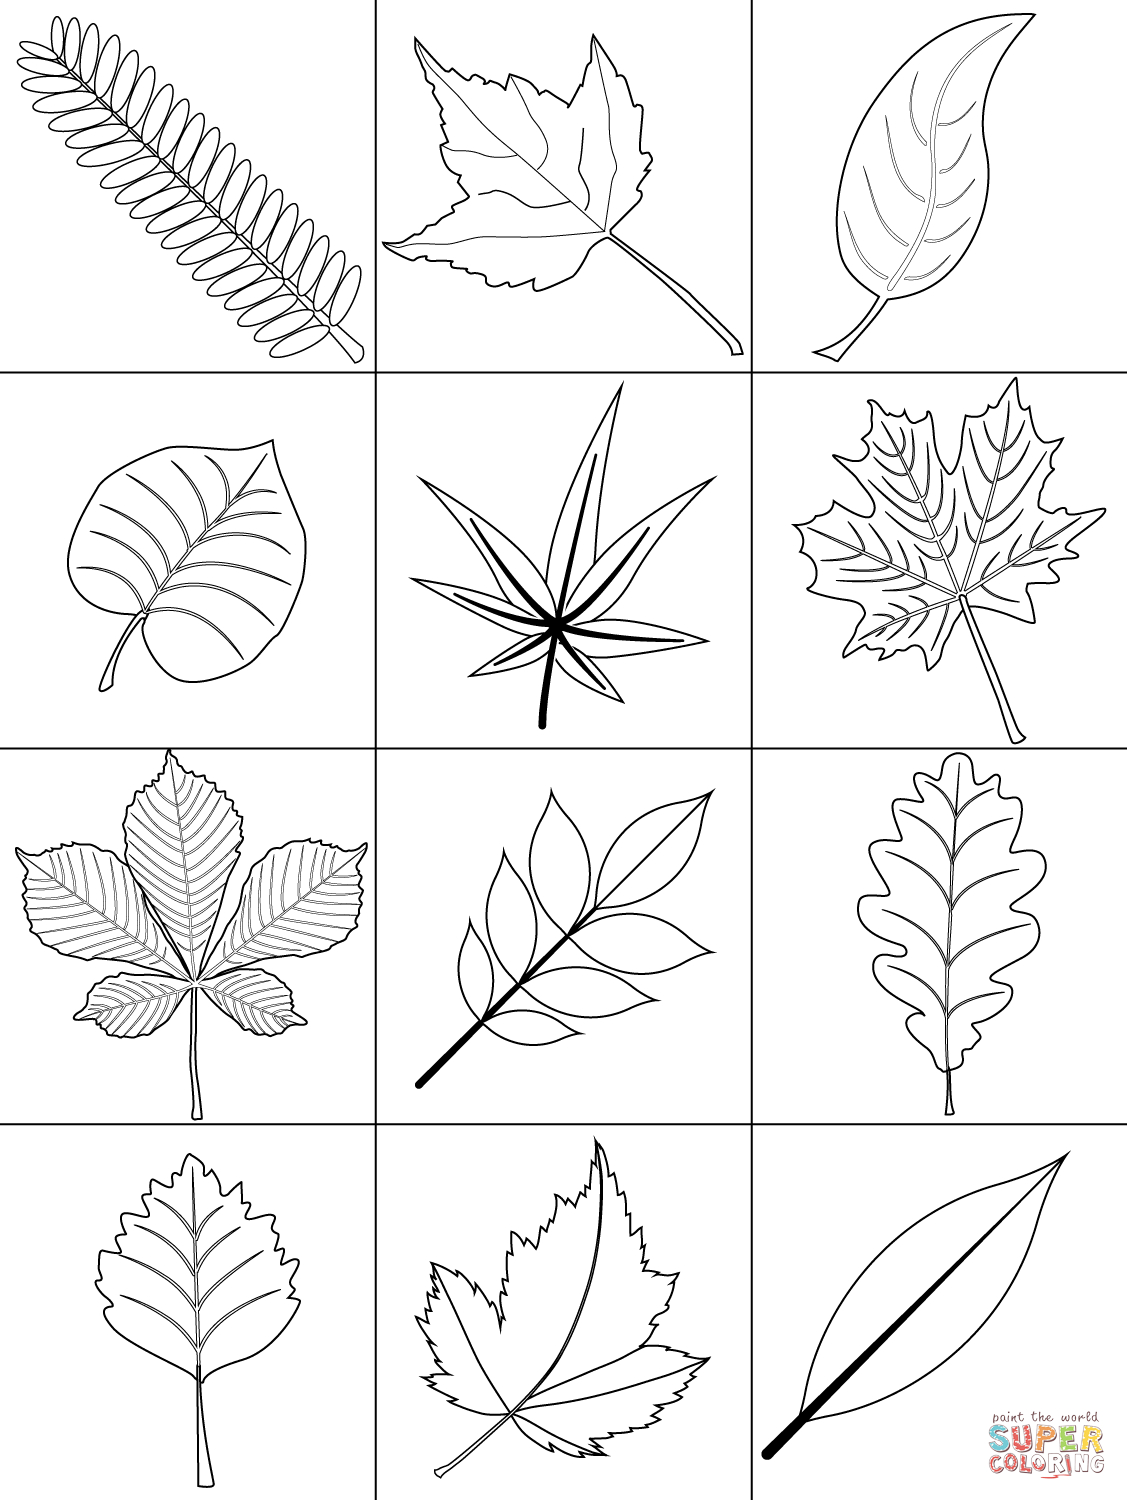 Autumn Leaves Coloring Page | Free Printable Coloring Pages - Free Printable Fall Leaves Coloring Pages